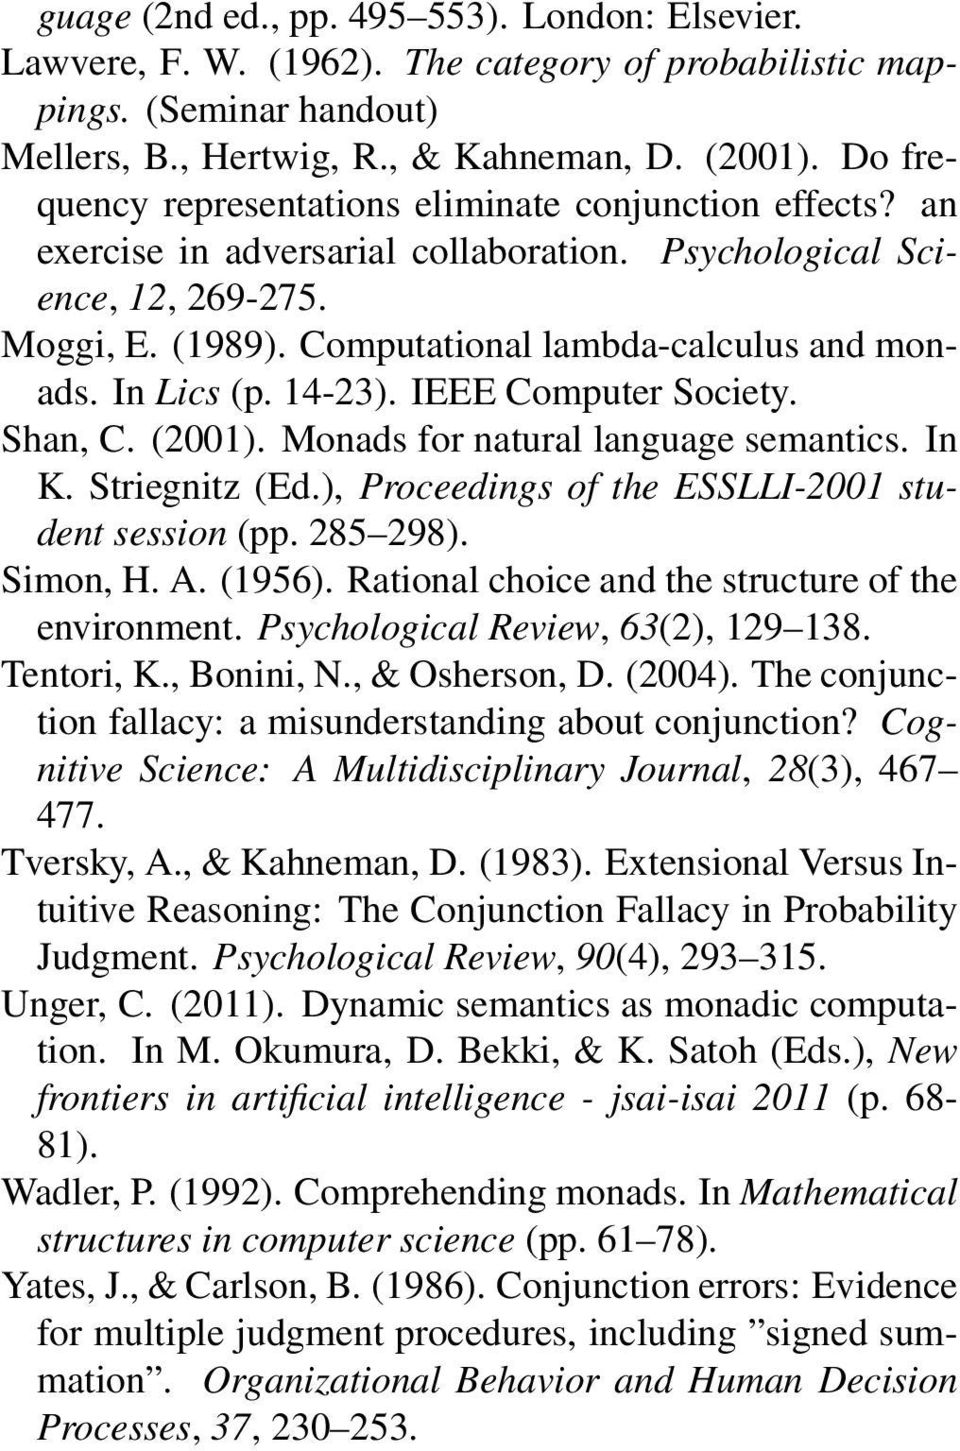 In Lics (p. 14-23). IEEE Computer Society. Shan, C. (2001). Monads for natural language semantics. In K. Striegnitz (Ed.), Proceedings of the ESSLLI-2001 student session (pp. 285 298). Simon, H. A.